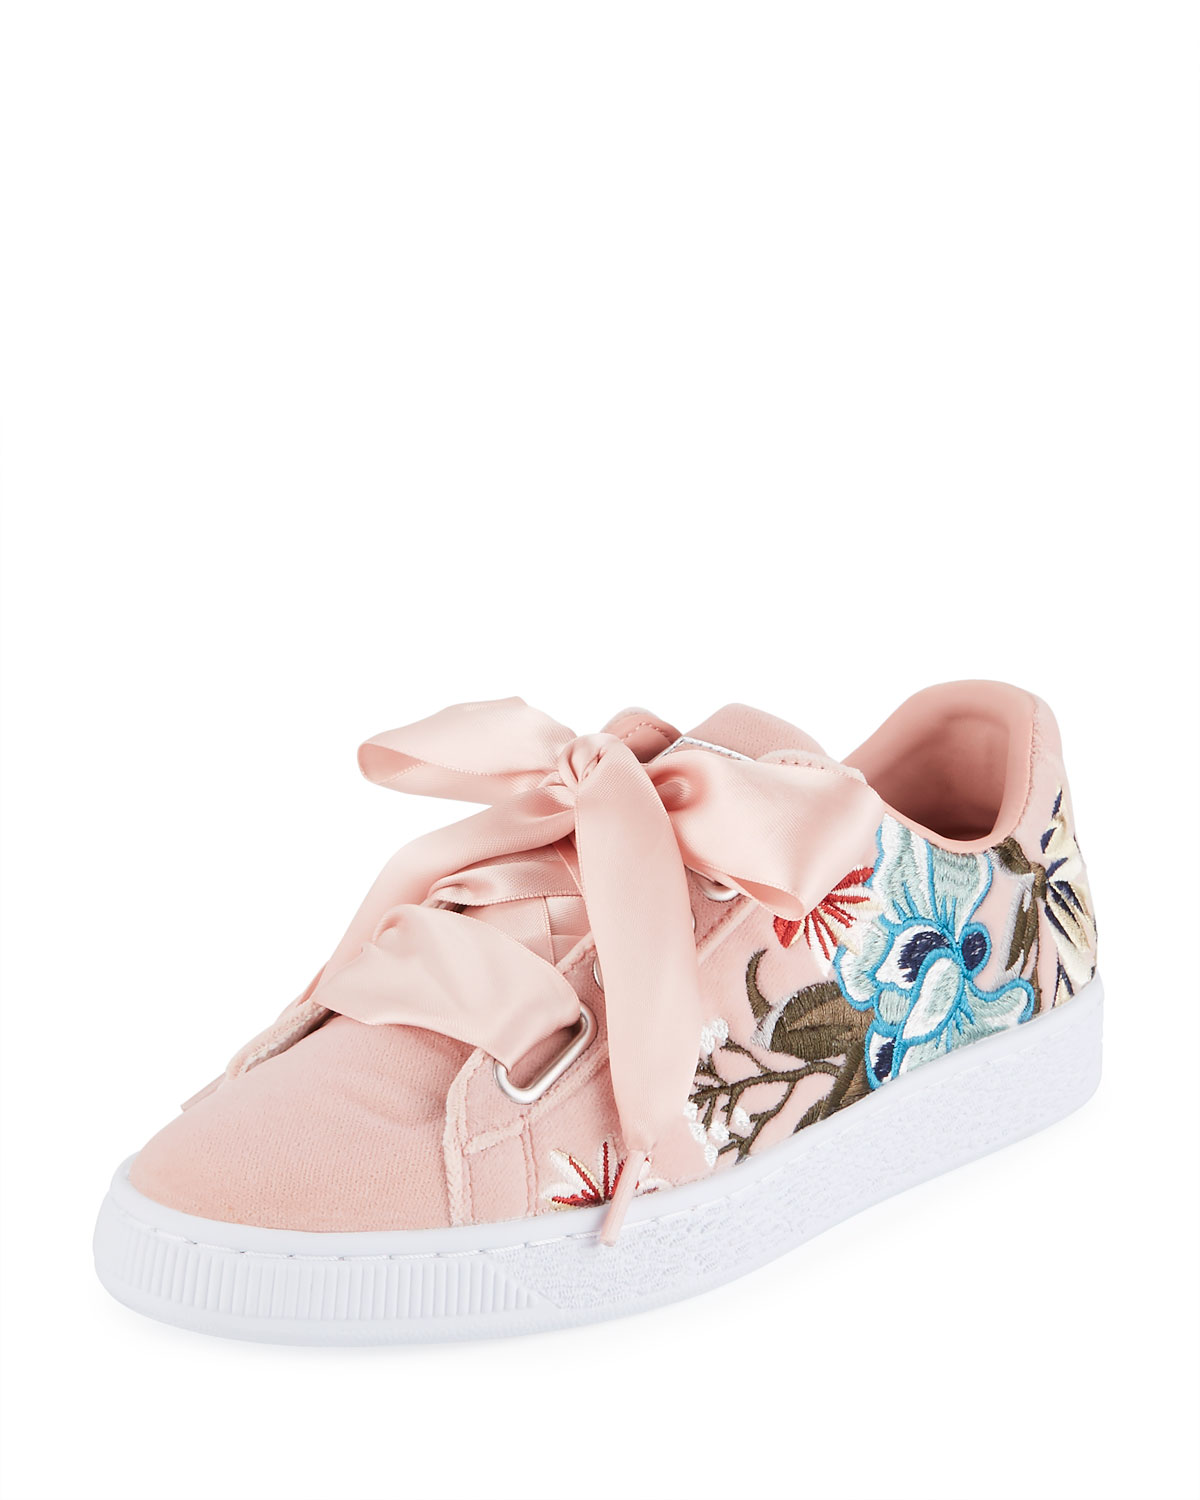 4f33629be7e7 Puma Basket Heart Hyper Embroidered Sneakers, Pink   Neiman Marcus